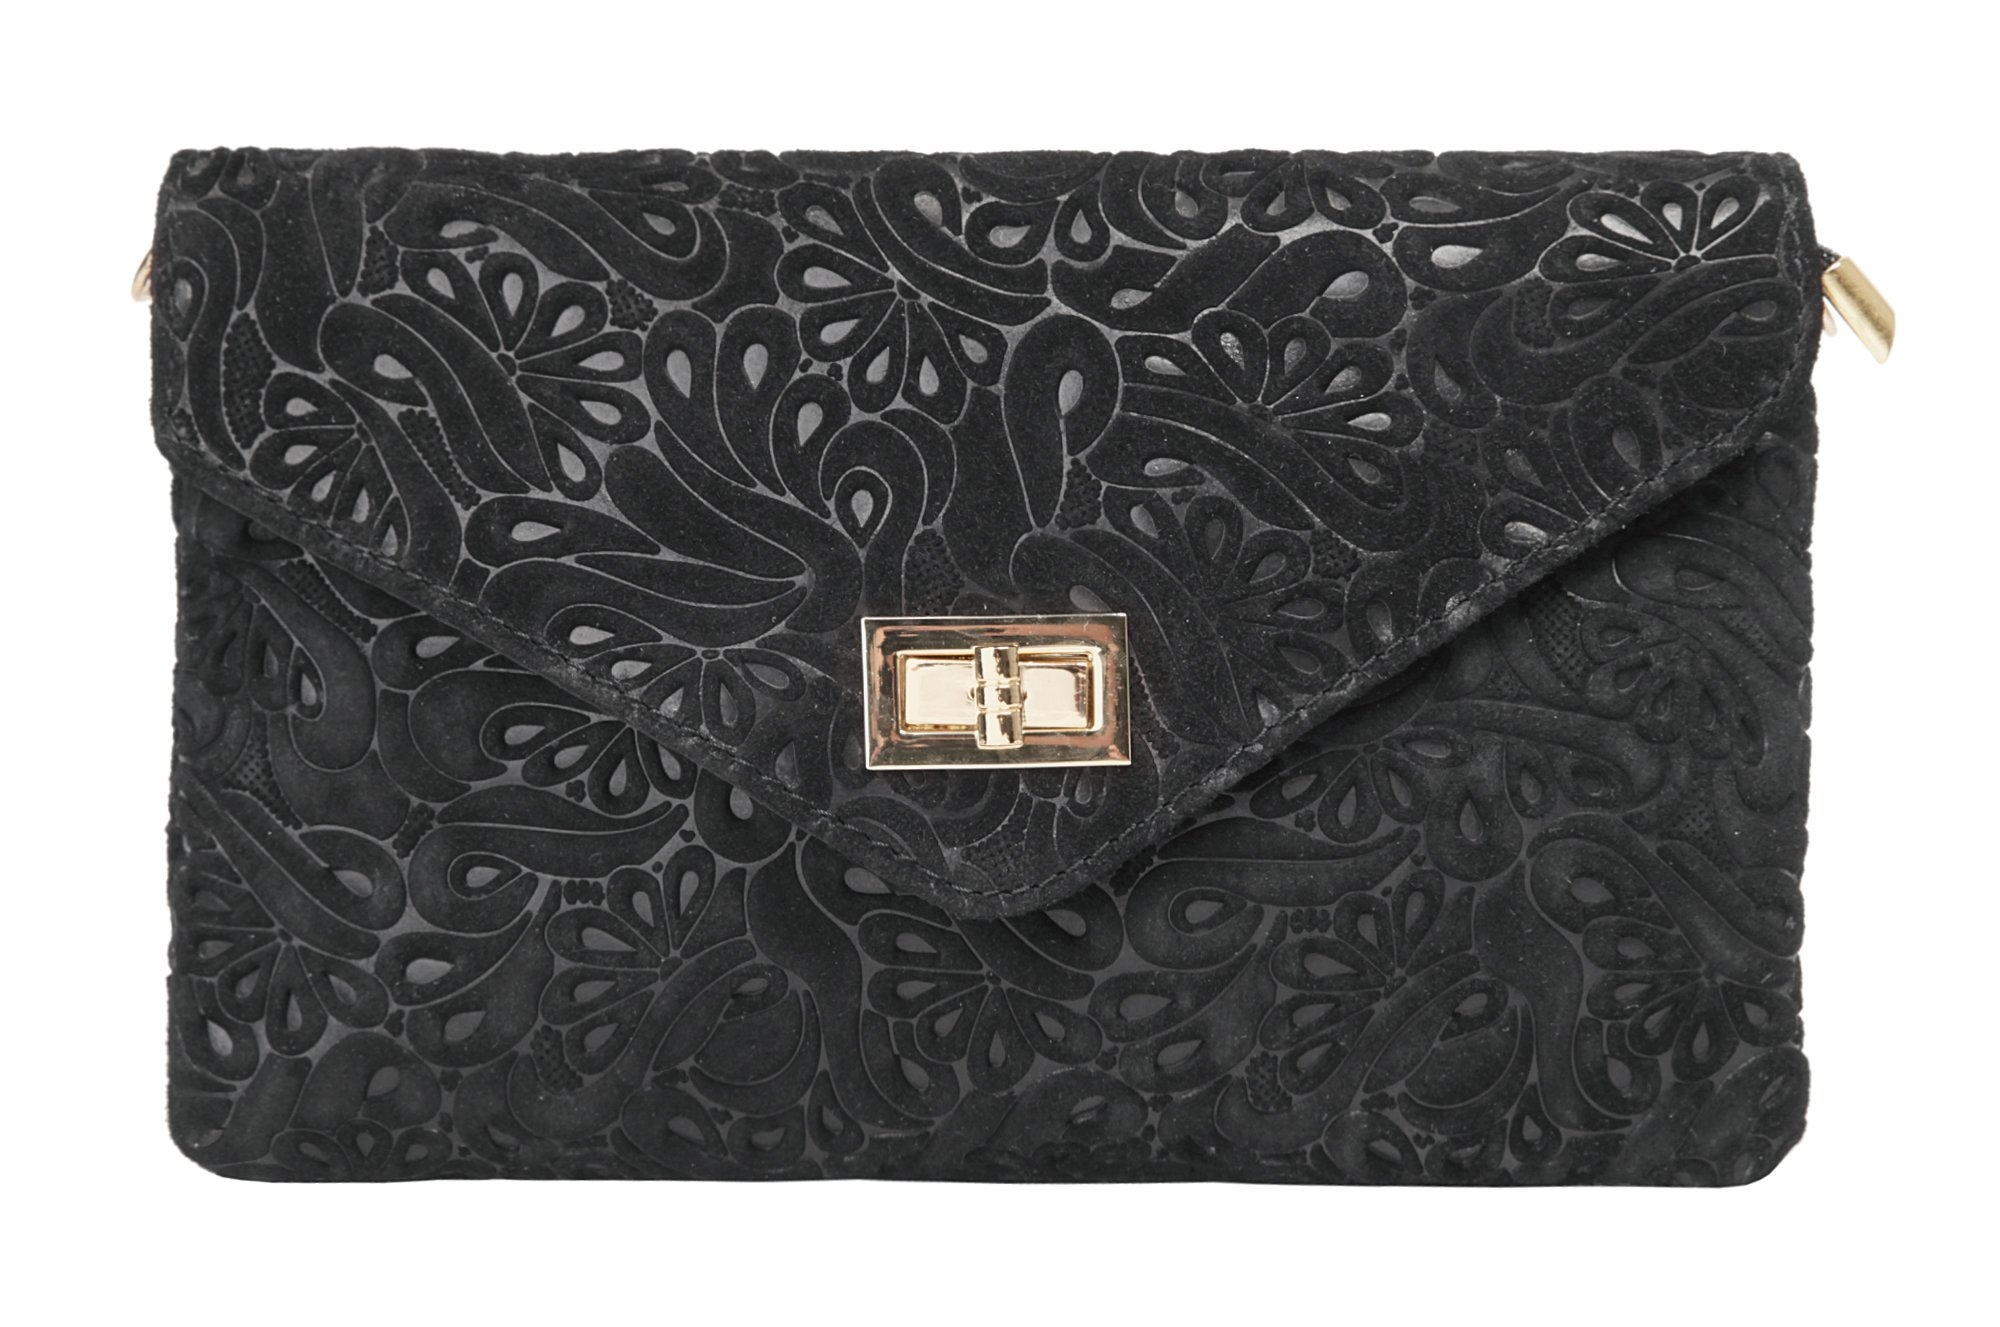 Online Clutch Look Winkel De In Samantha Yyb7fg6